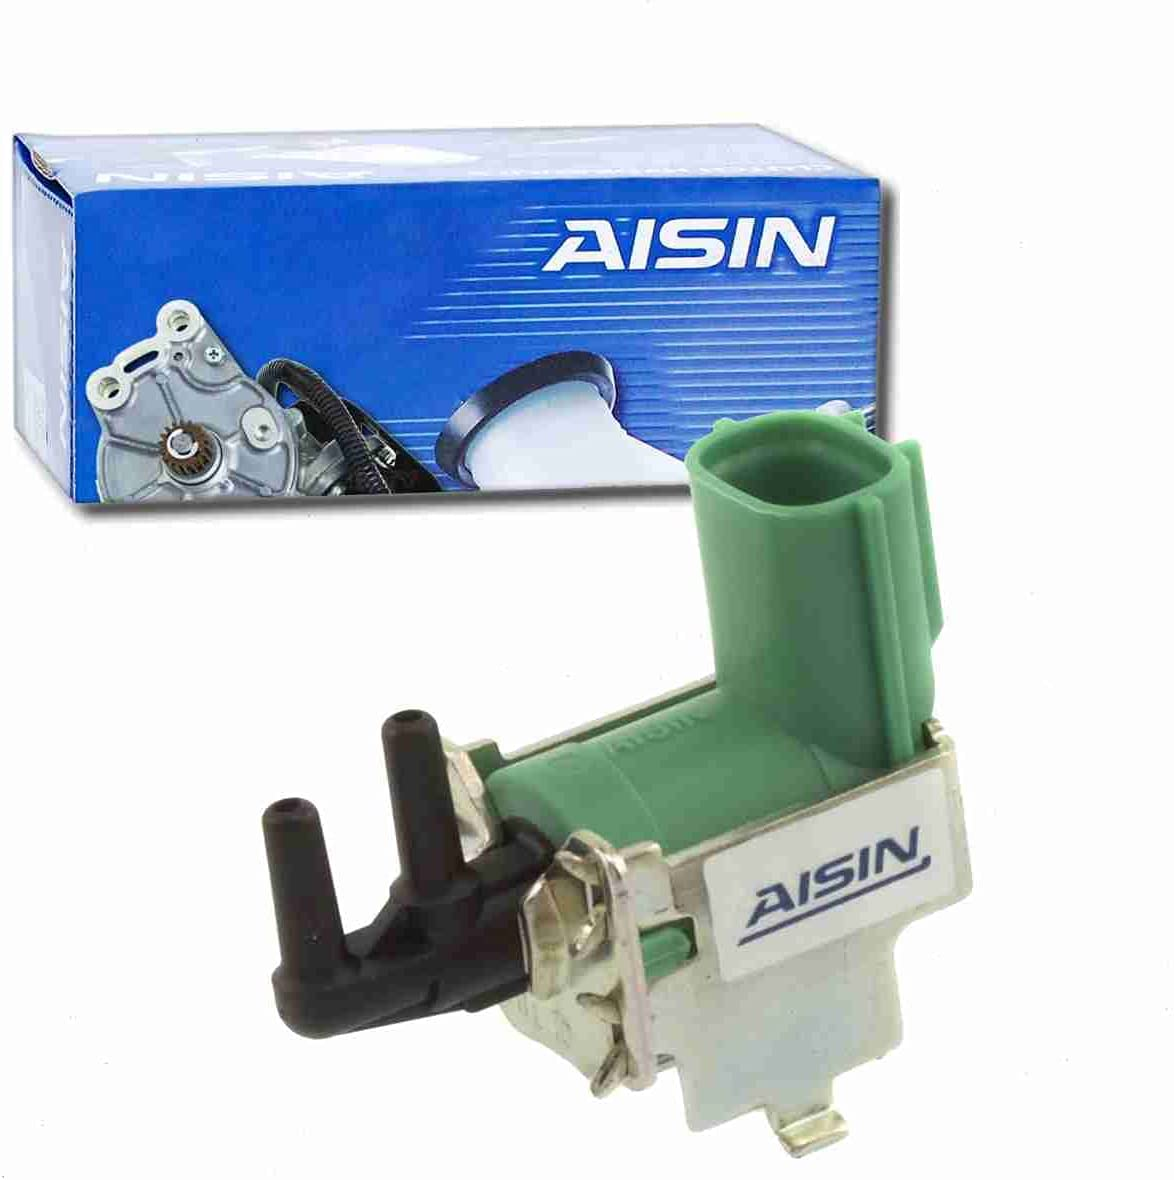 AISIN Vacuum Switching Valve compatible Tacoma Credence 2.4L Toyota with Spasm price